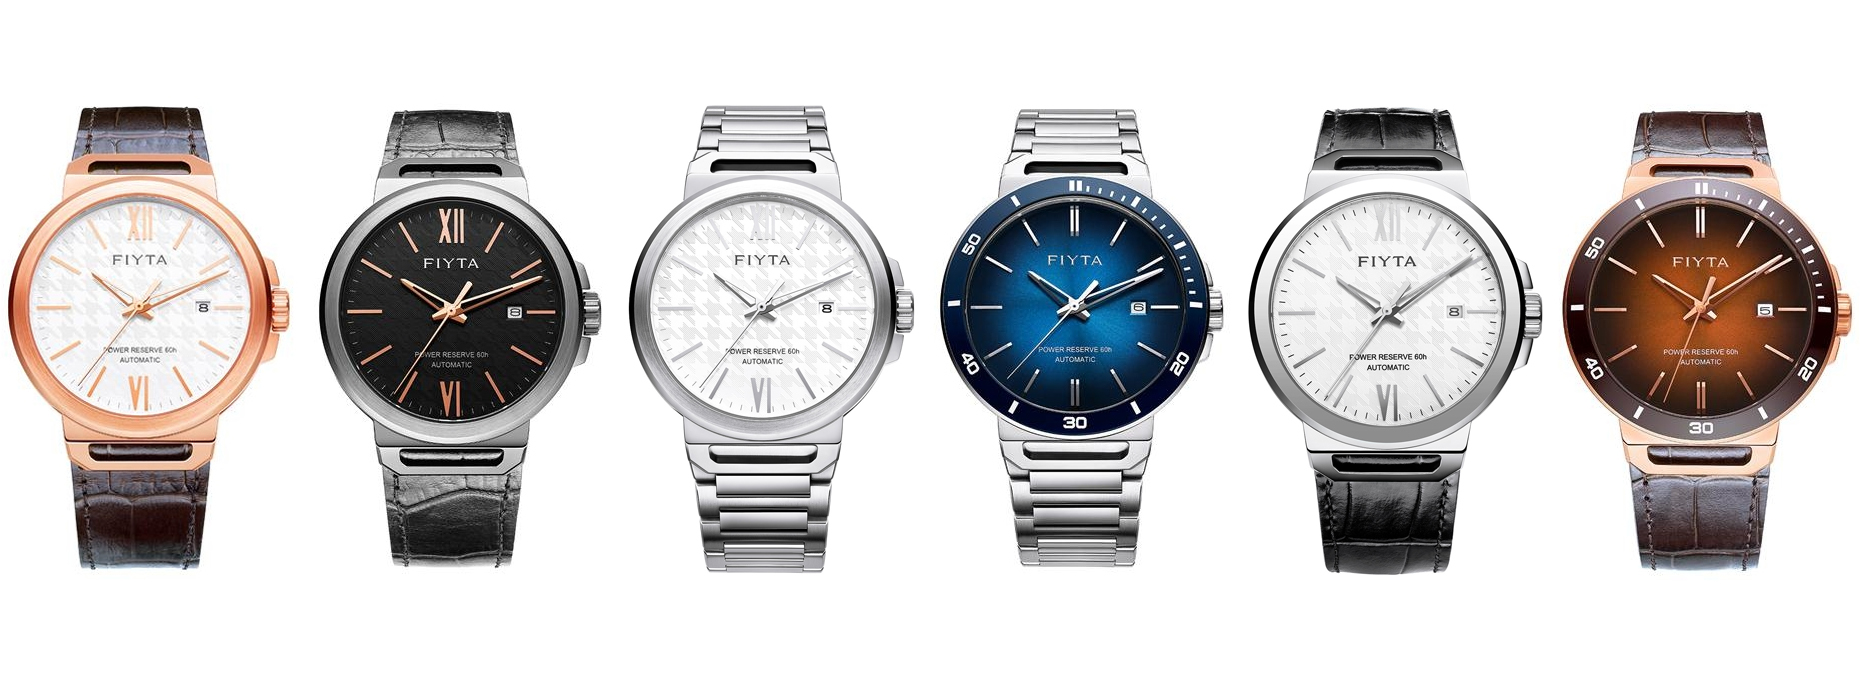 FIYTA Watches Solo Collection watches list